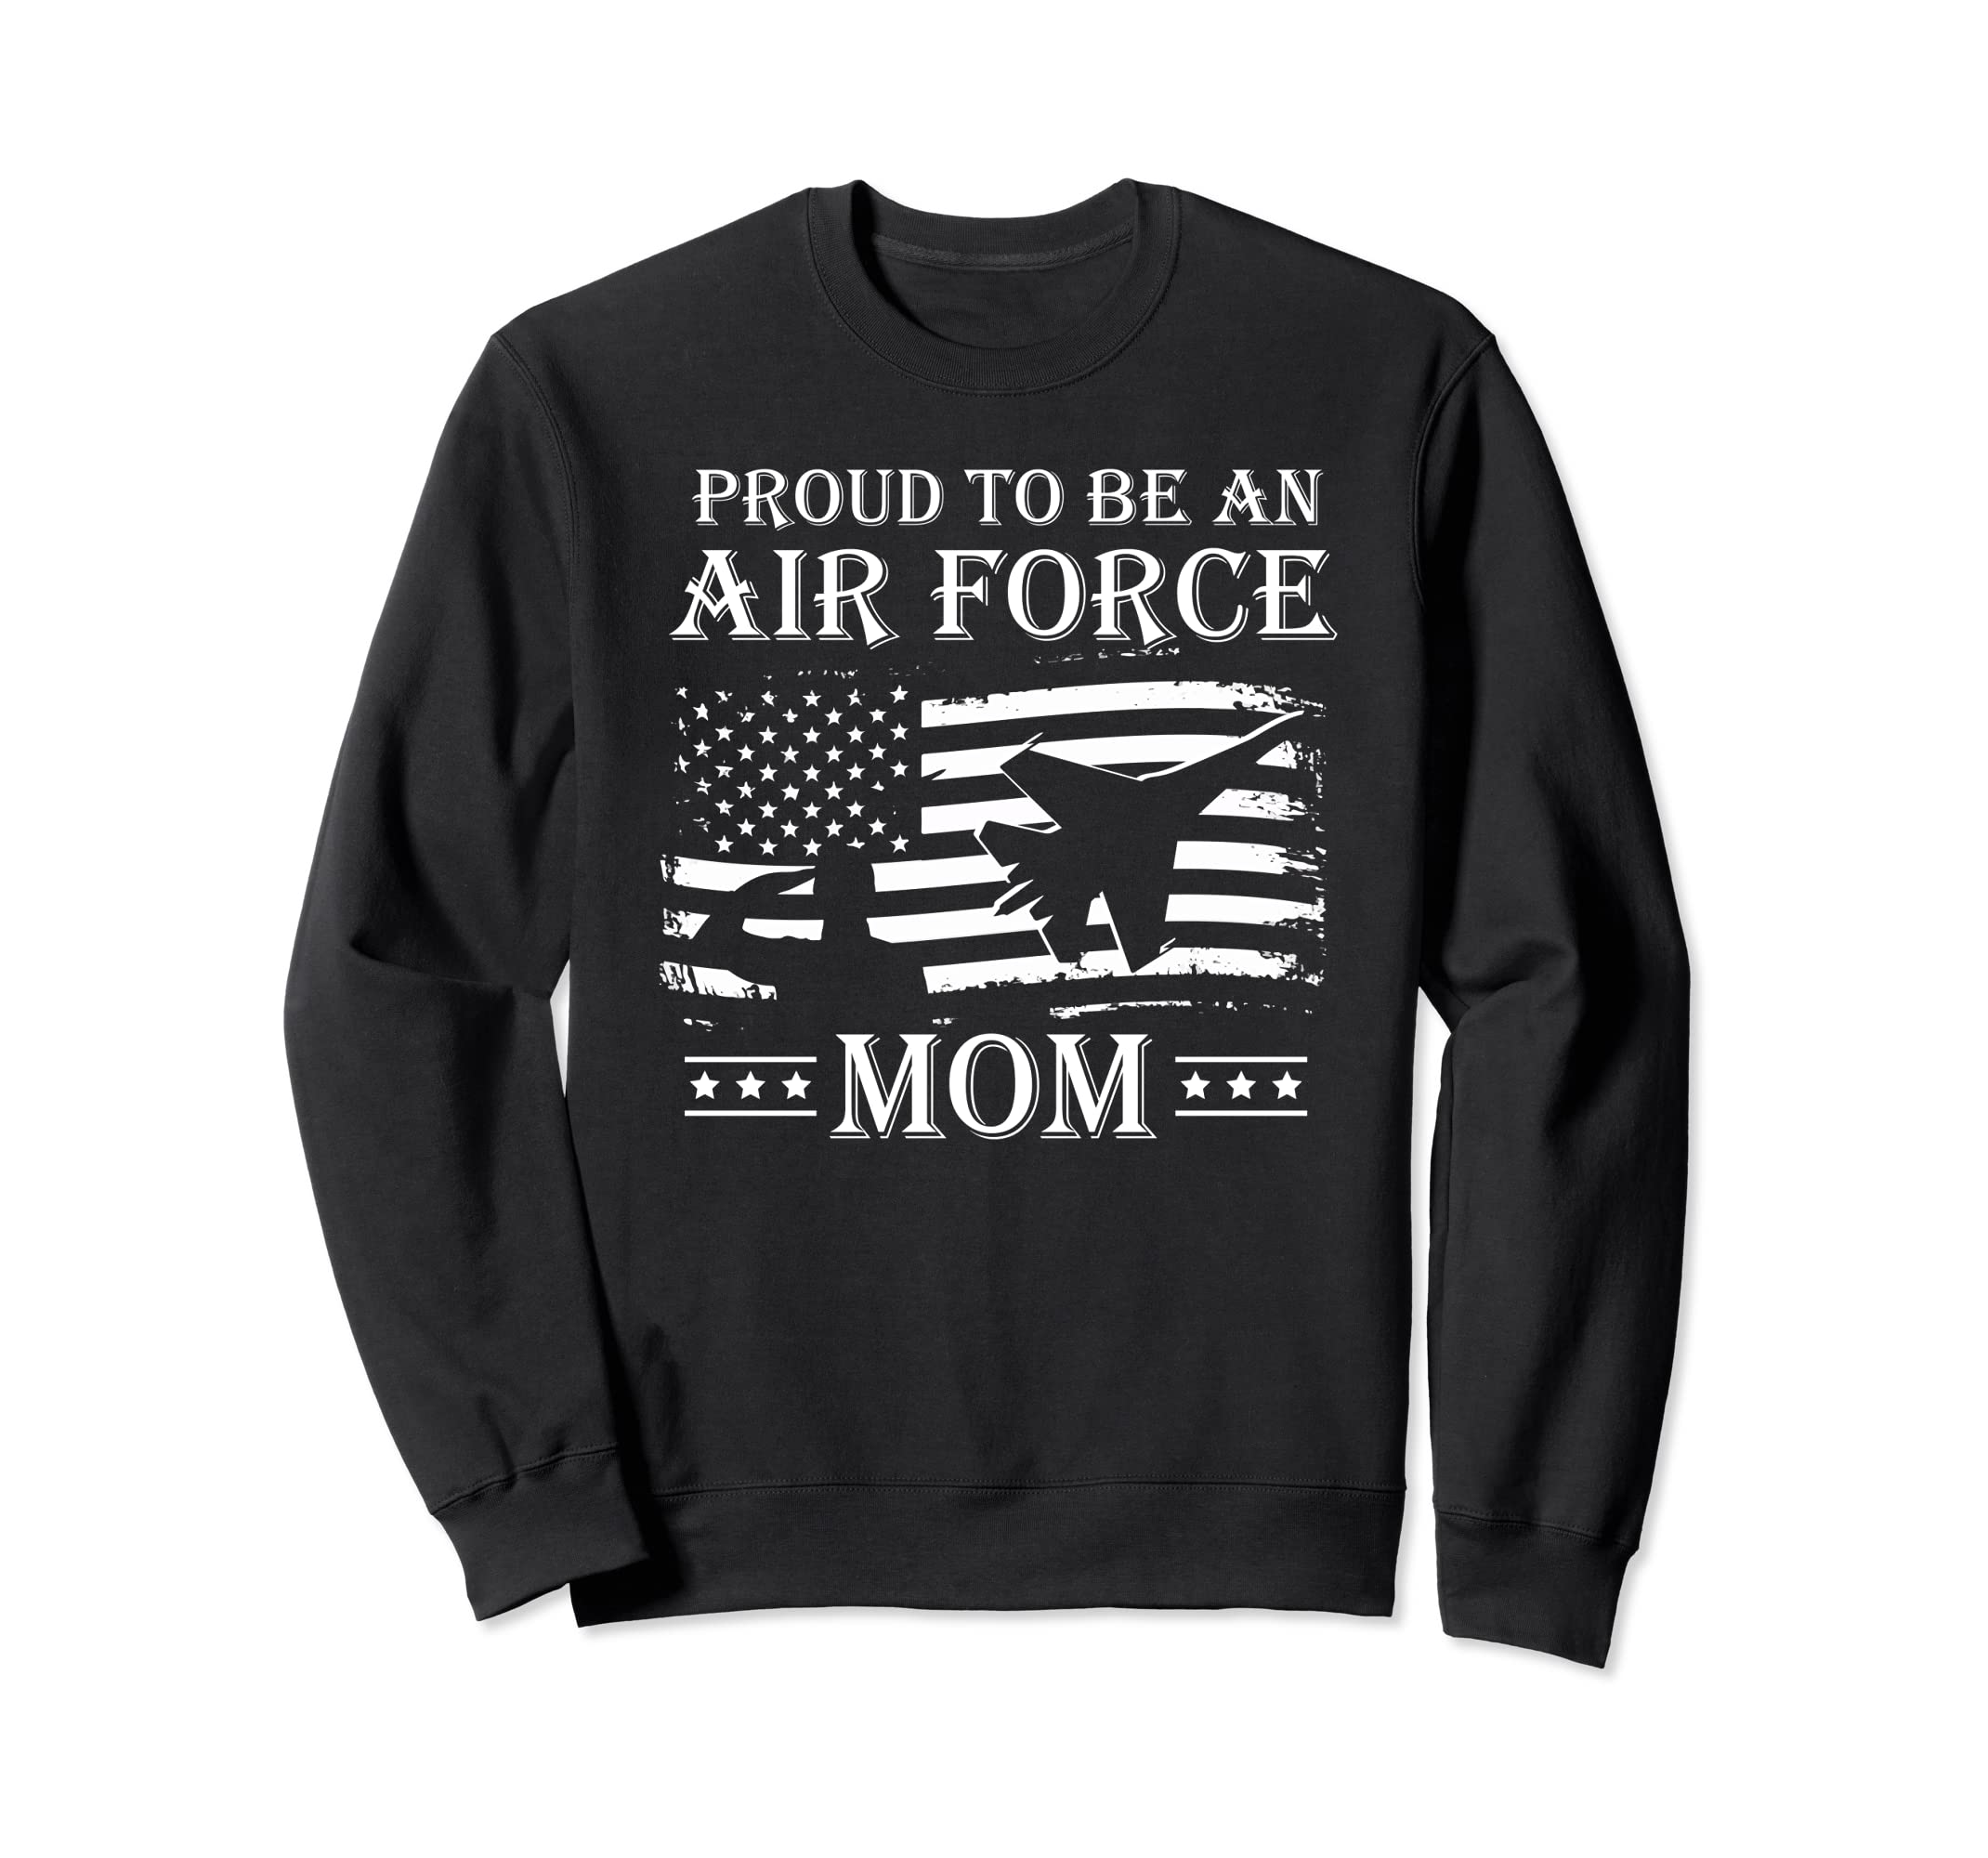 Proud To Be An Air Force Mom Sweat Shirt Pride Military-Teehay